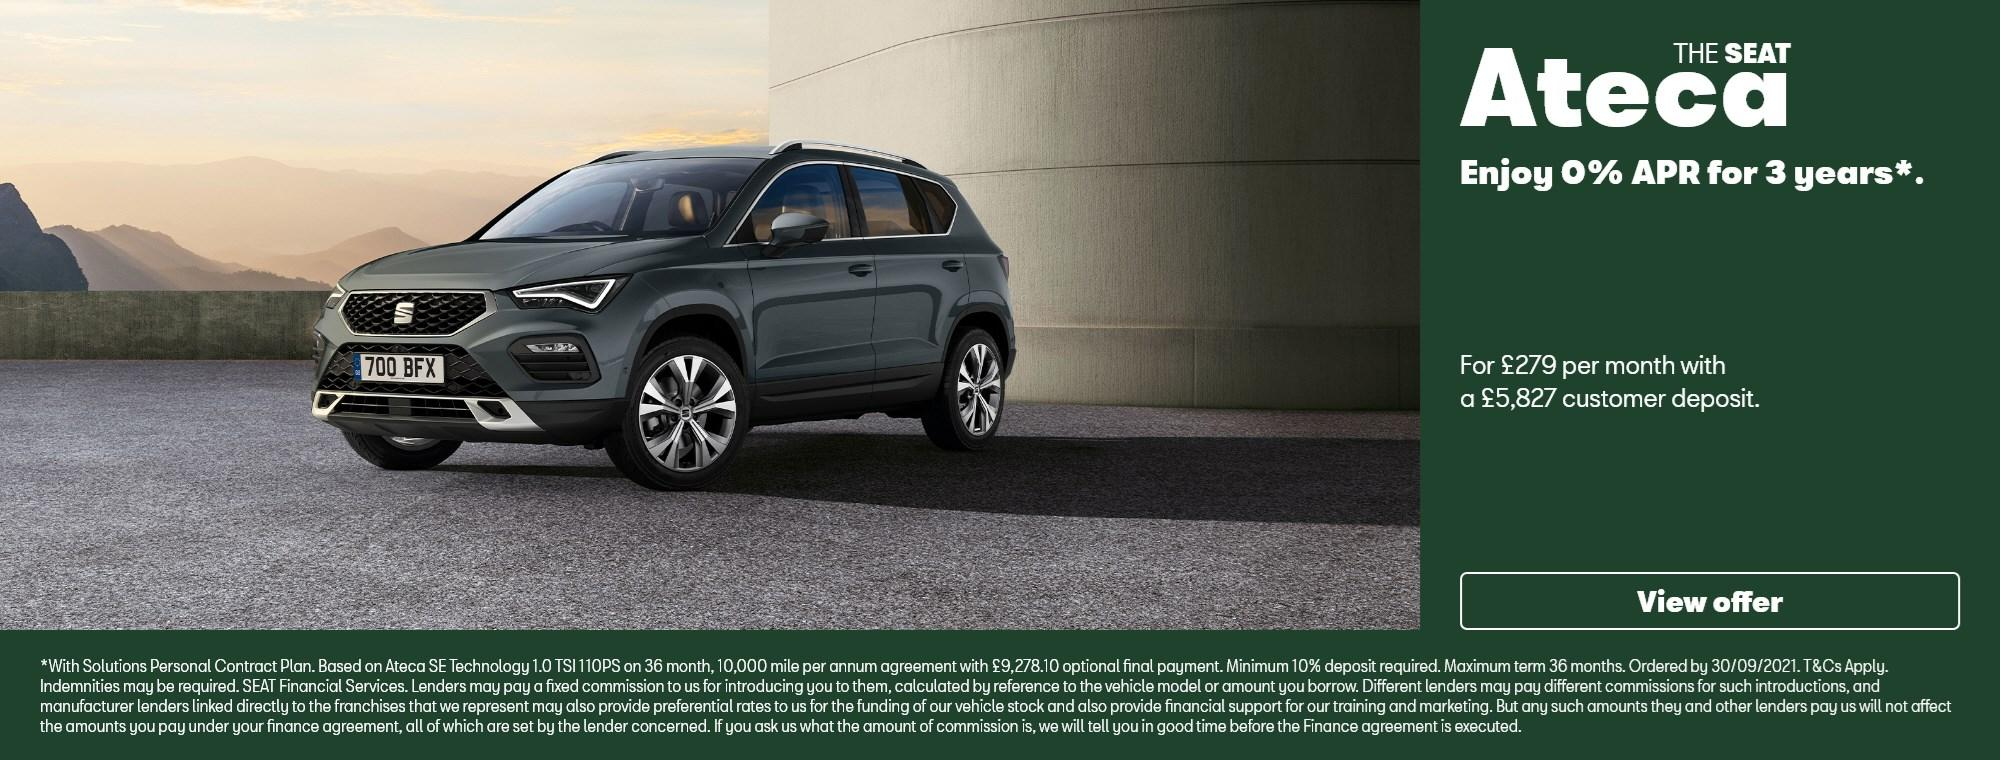 New SEAT Ateca with offer